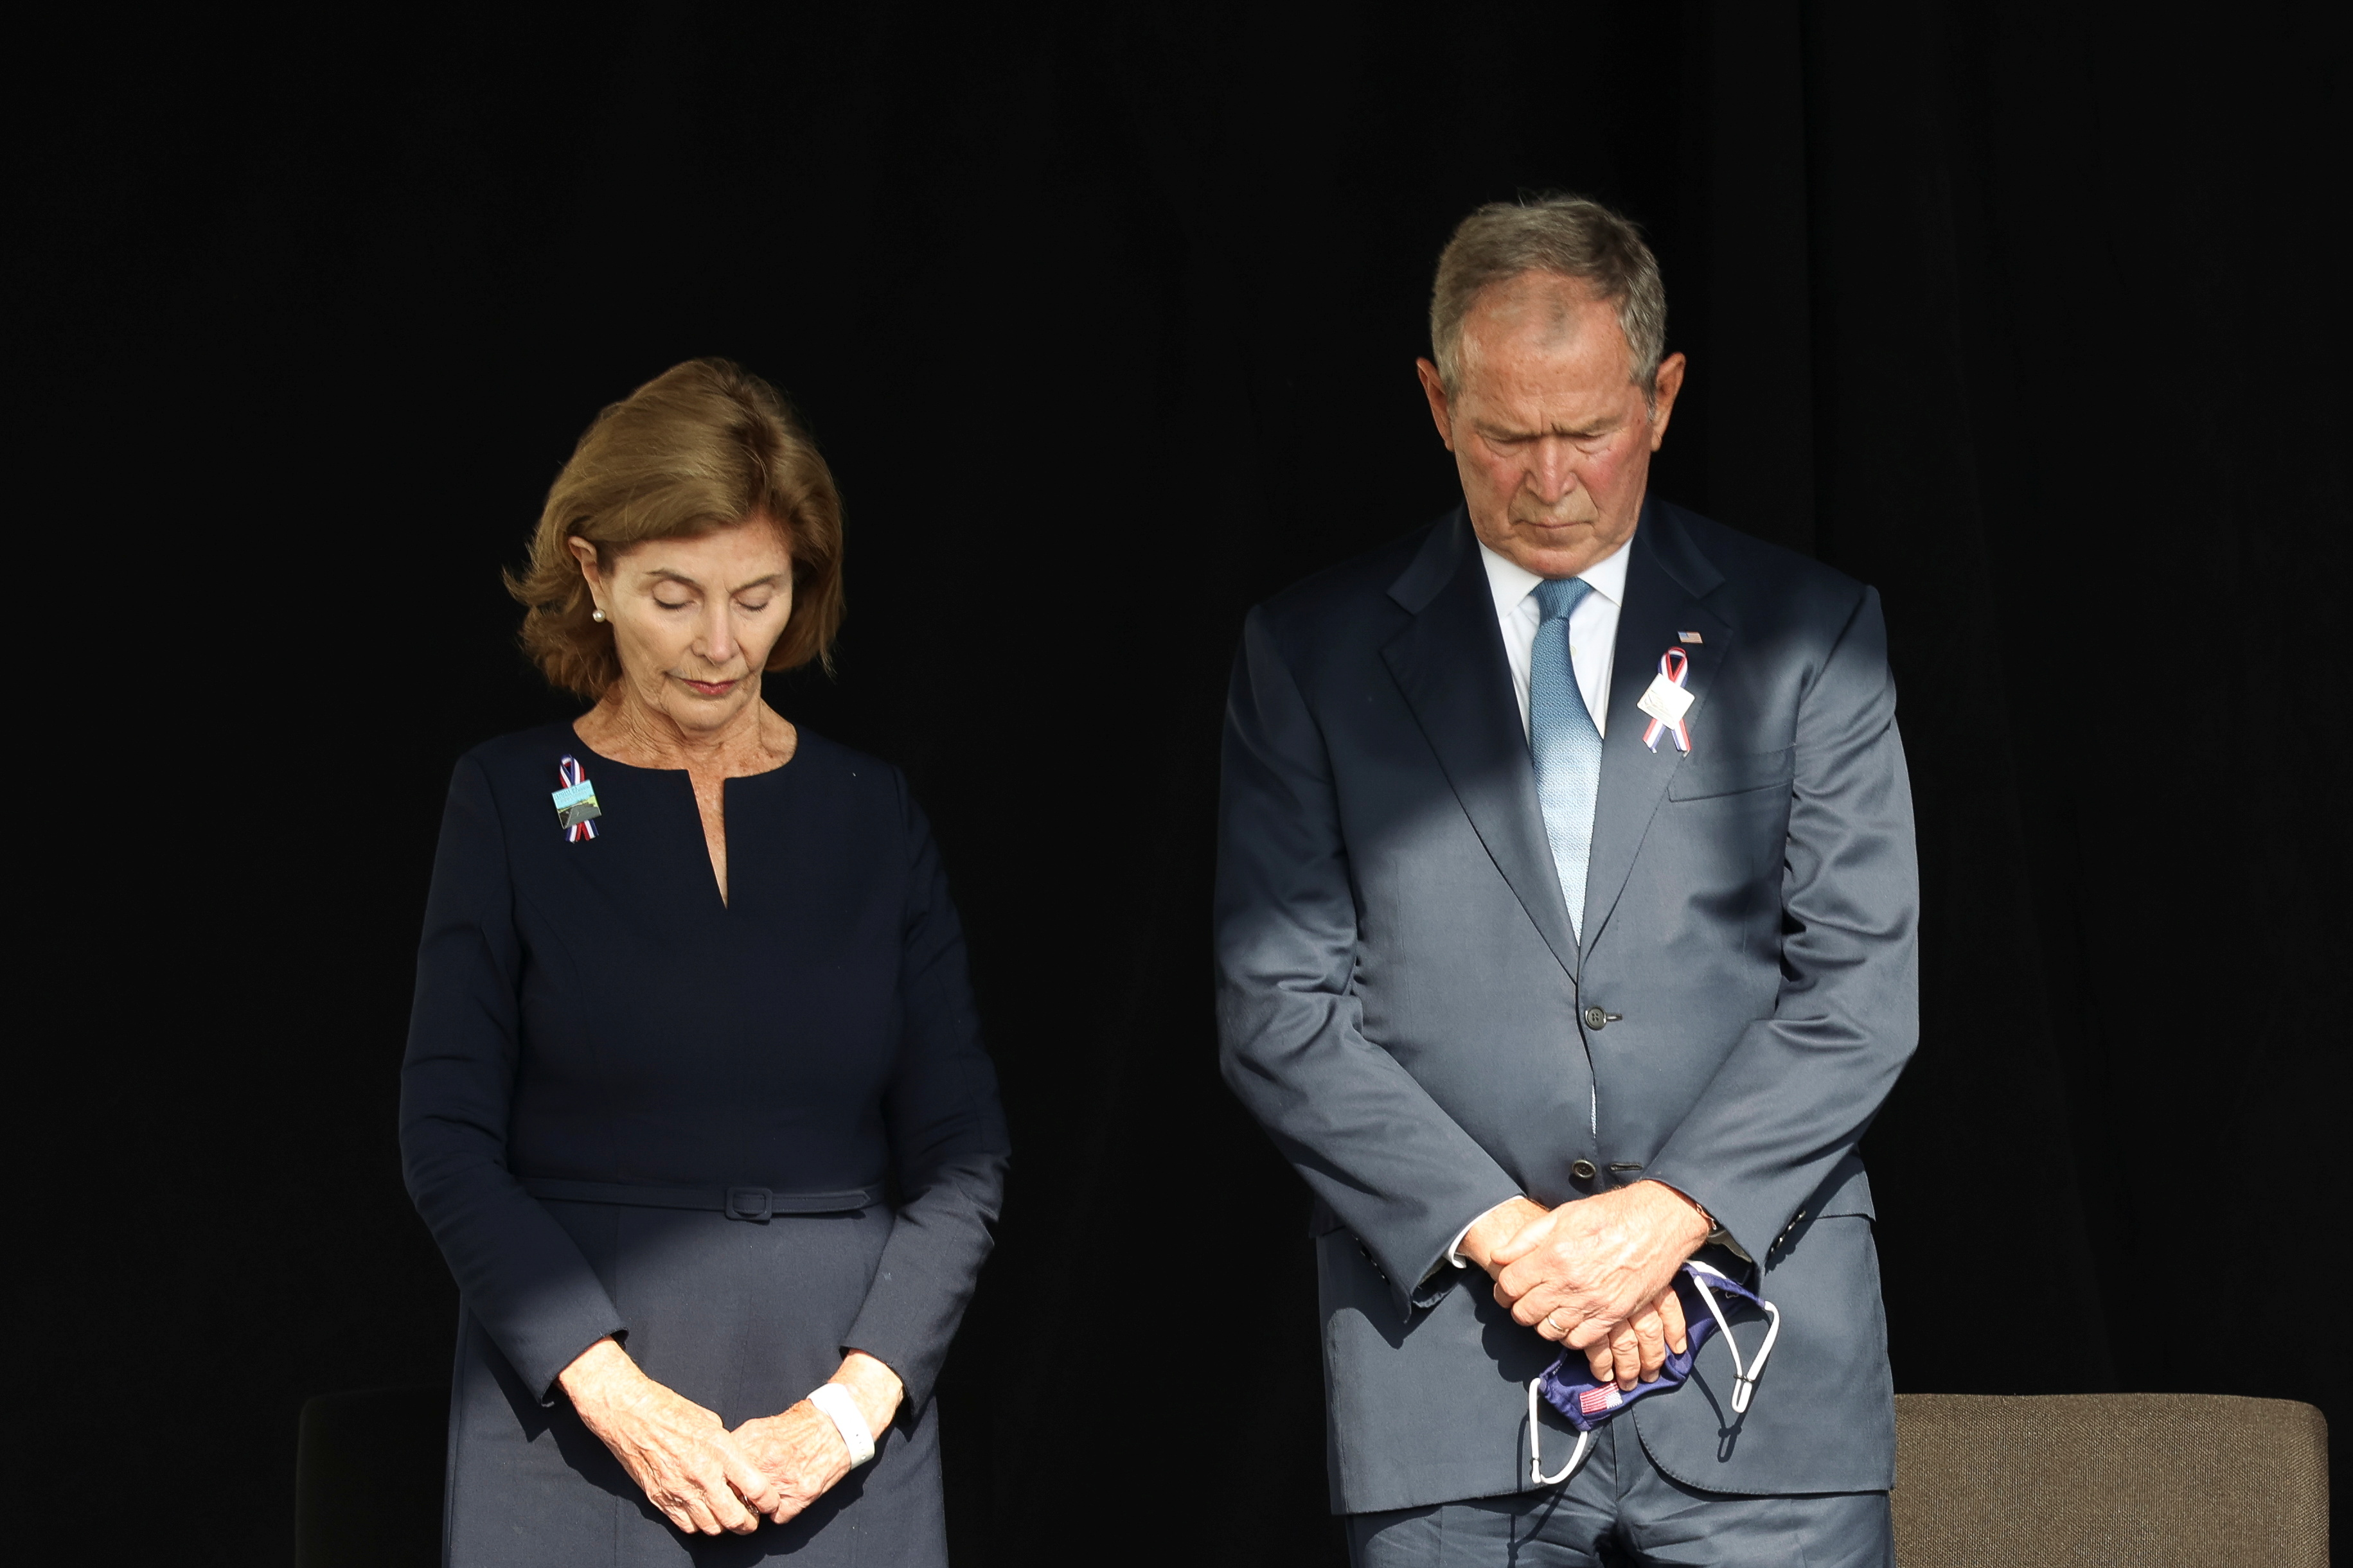 Former U.S. President George W. Bush and his wife Laura attend an event commemorating the 20th anniversary of the September 11, 2001 attacks at the Flight 93 National Memorial in Stoystown, Pennsylvania, U.S., September 11, 2021. REUTERS/Hannah Beier